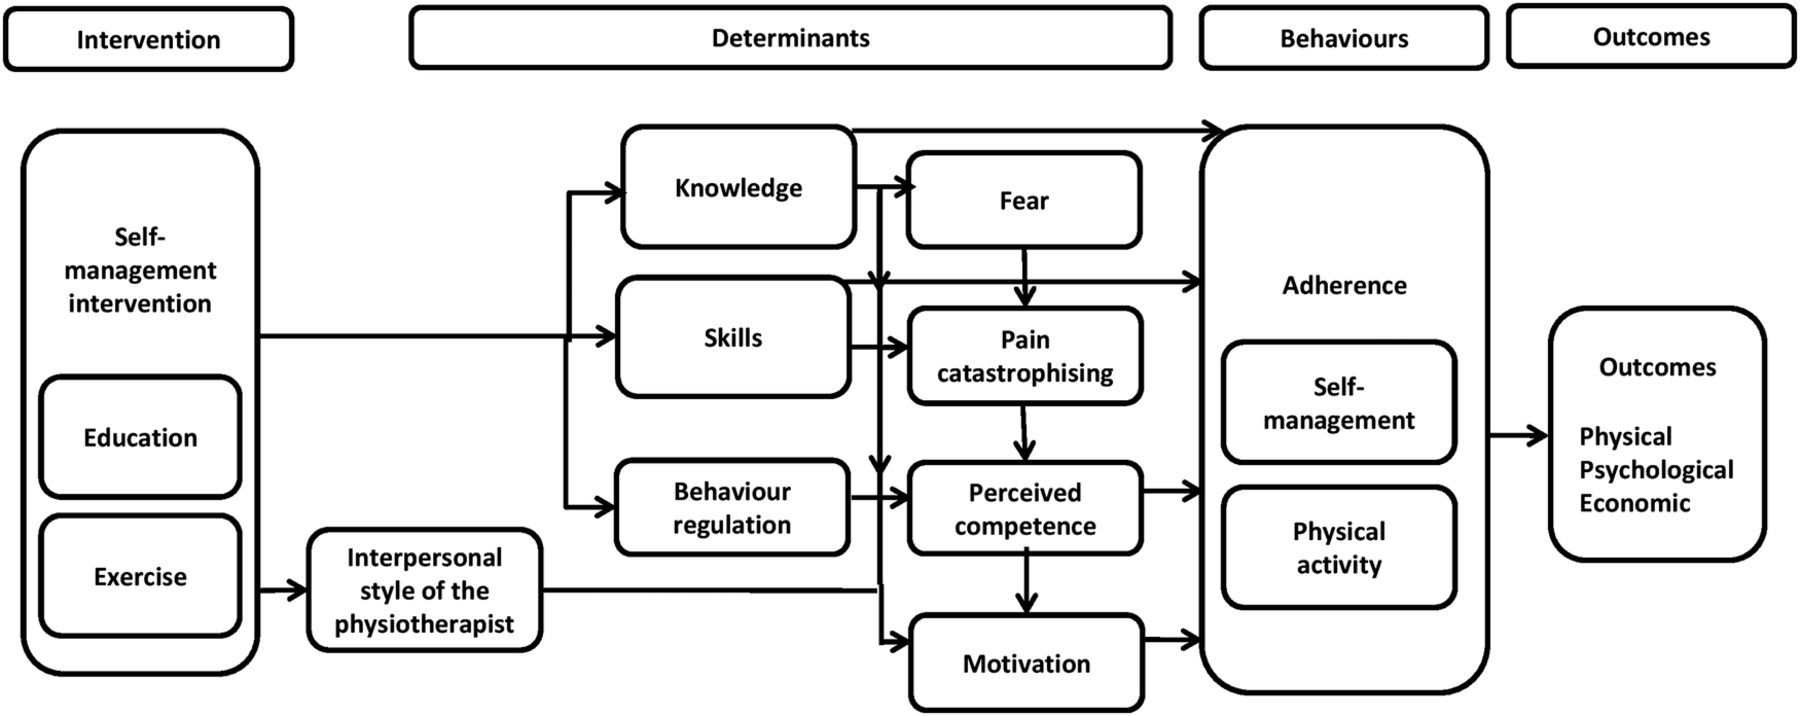 Theory-driven group-based complex intervention to support self